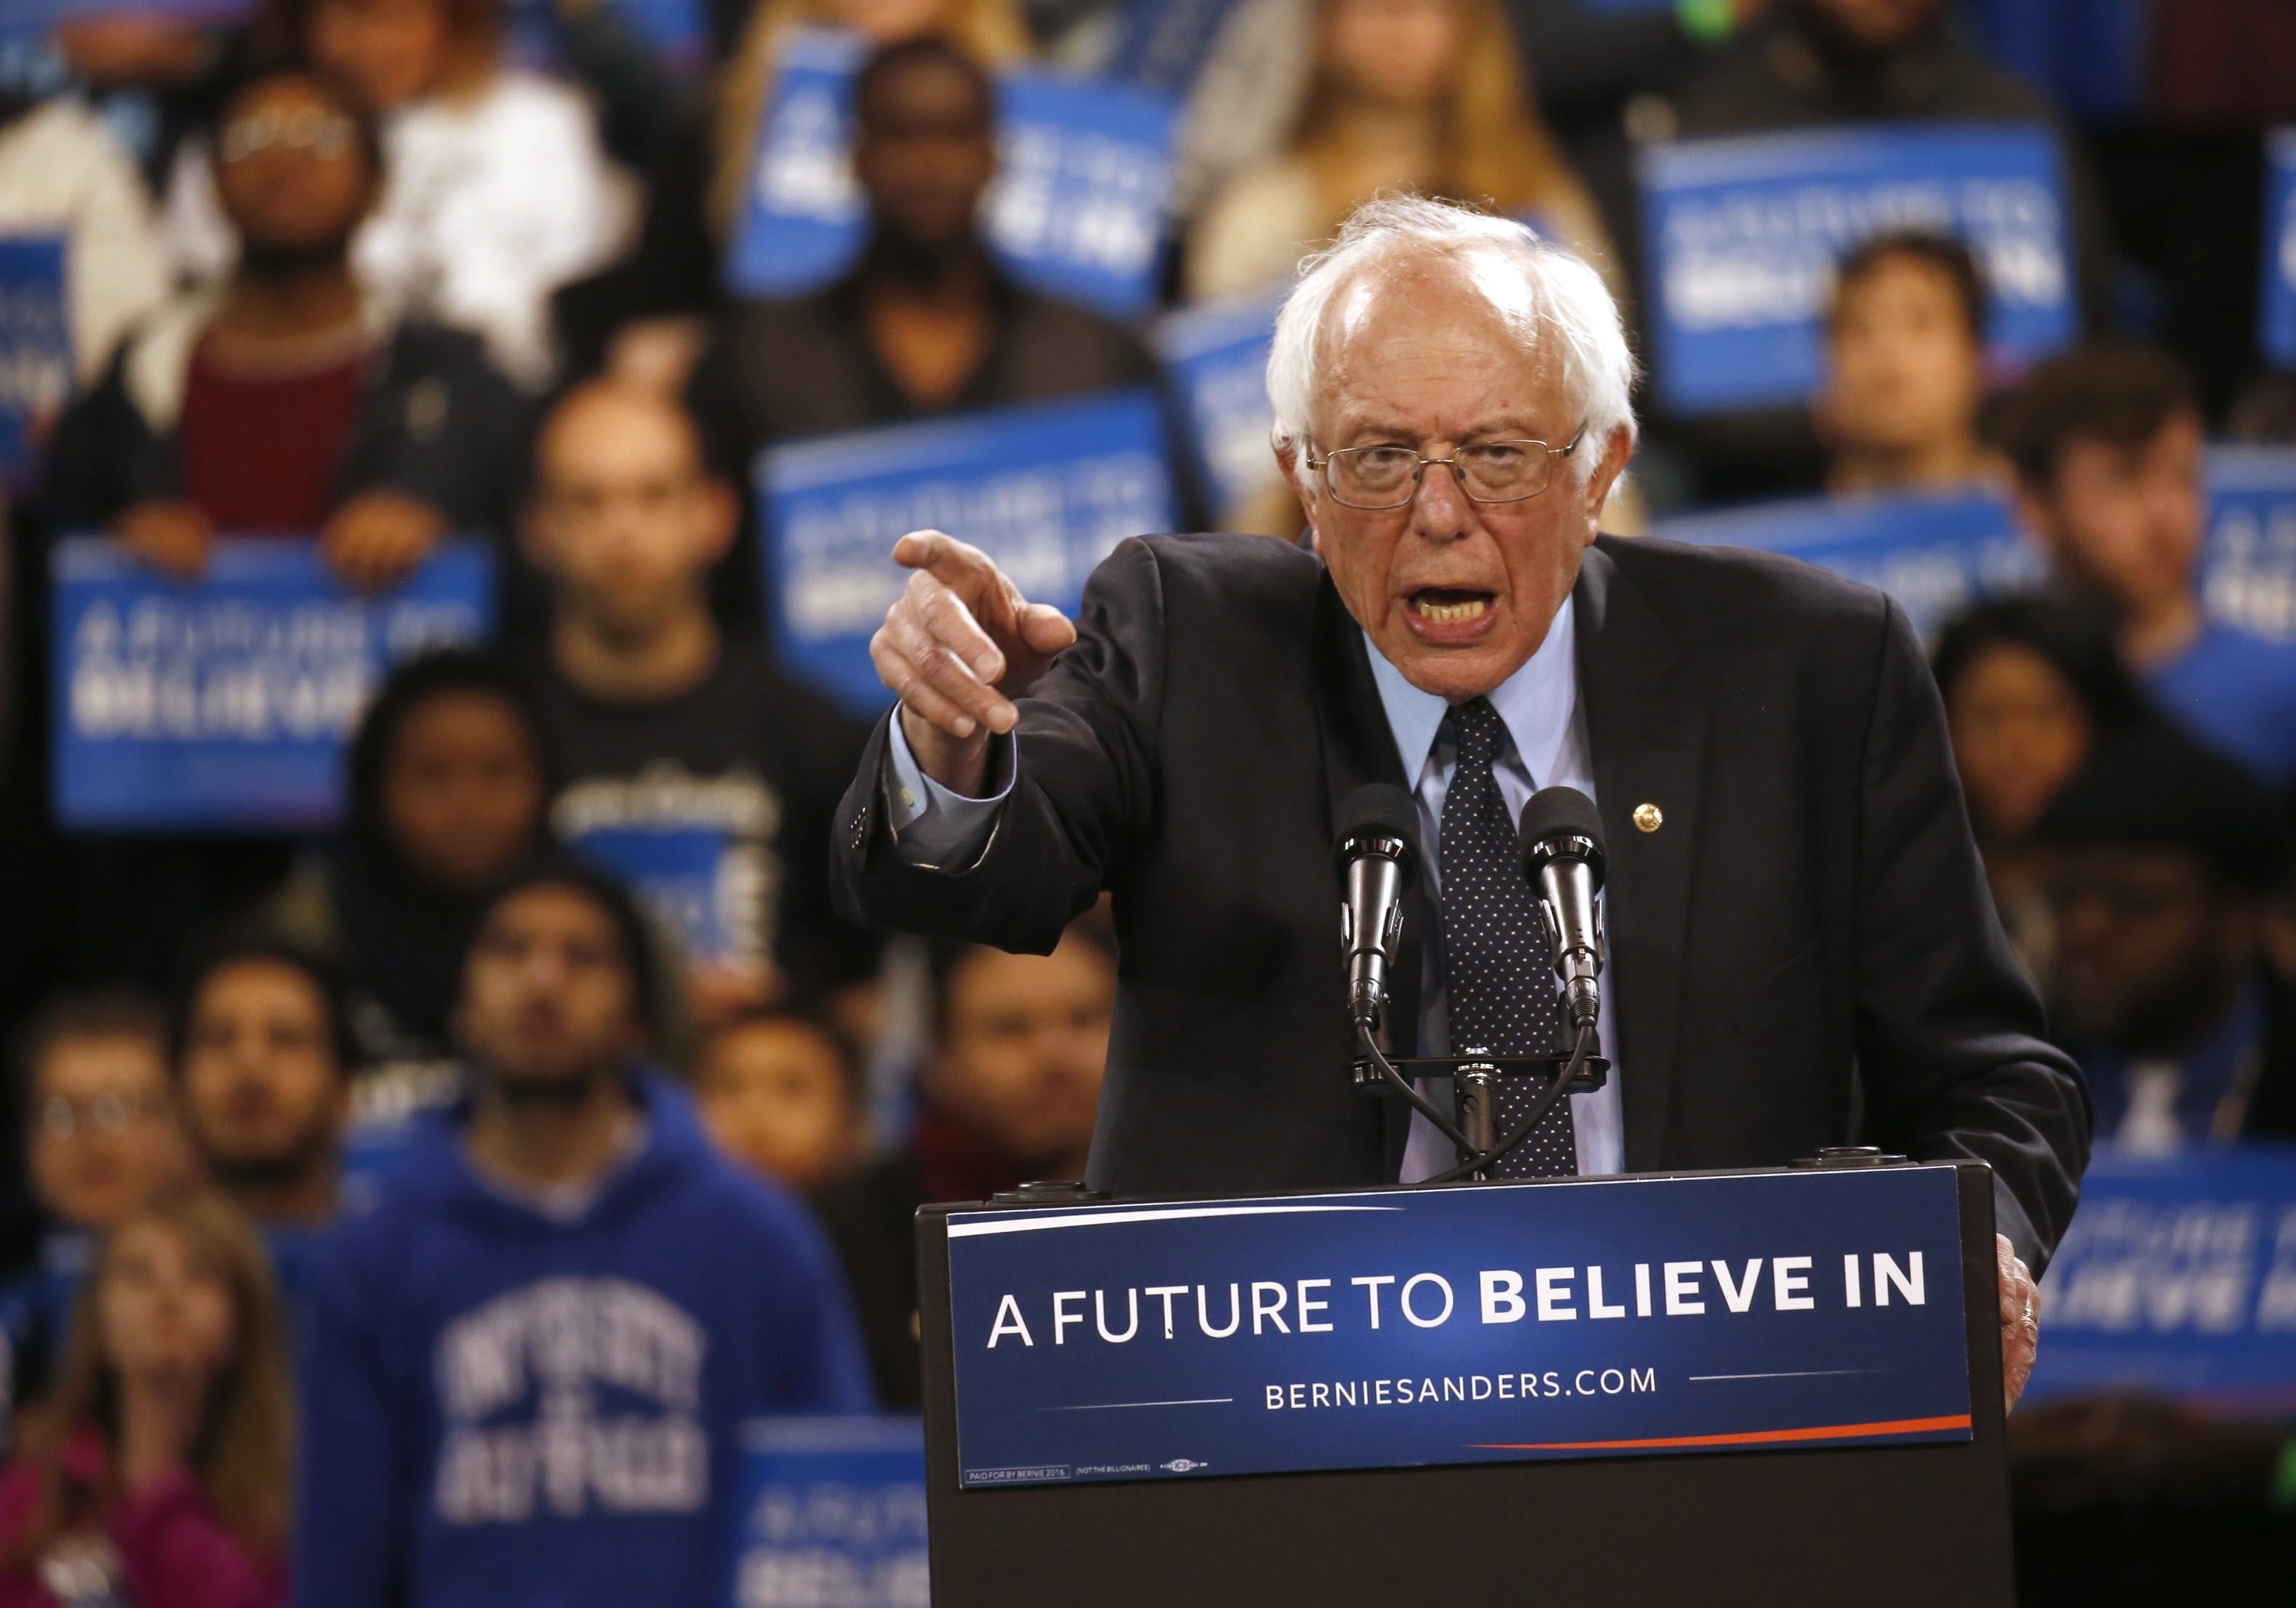 What Bernie Sanders' appearance in the University at Buffalo's Alumni Arena on April 11 lacked in sophistication, it partially made up for in old-school bluster and smart improvisation. (Robert Kirkham/Buffalo News)